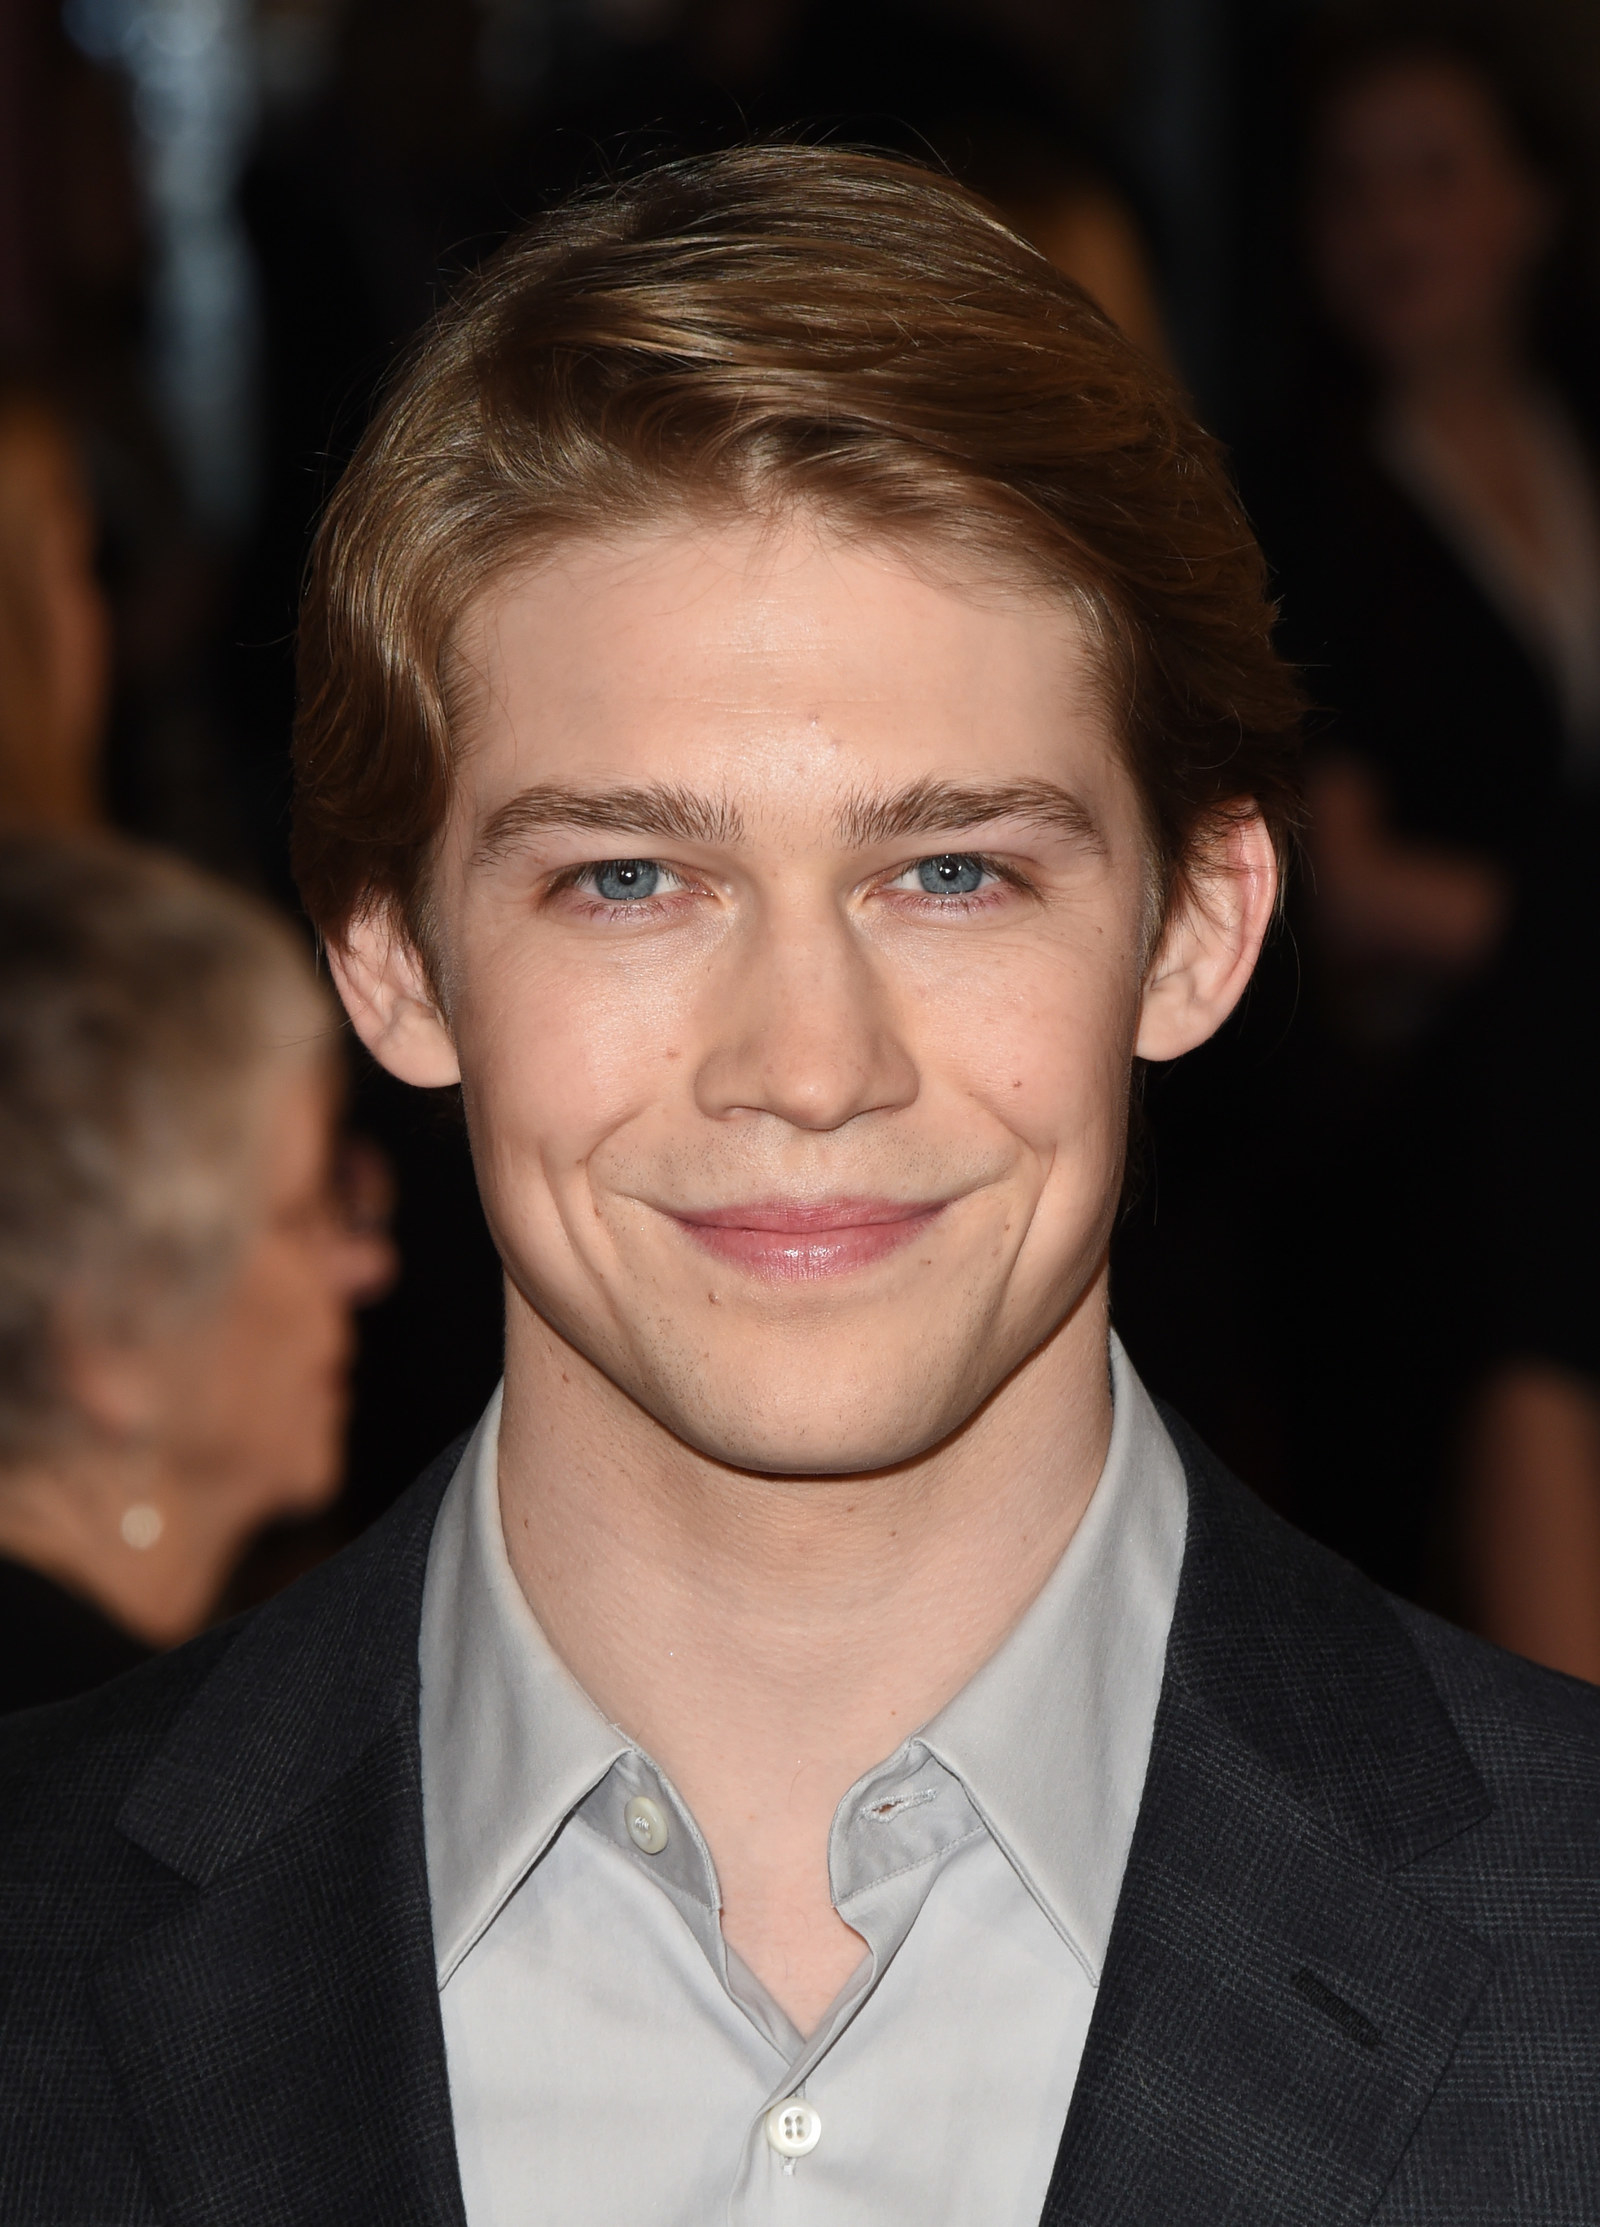 27 September 2018 Joe Alwyn news gossip photos of Joe Alwyn biography Joe Alwyn girlfriend list 2016 Relationship history Joe Alwyn relationship list Joe